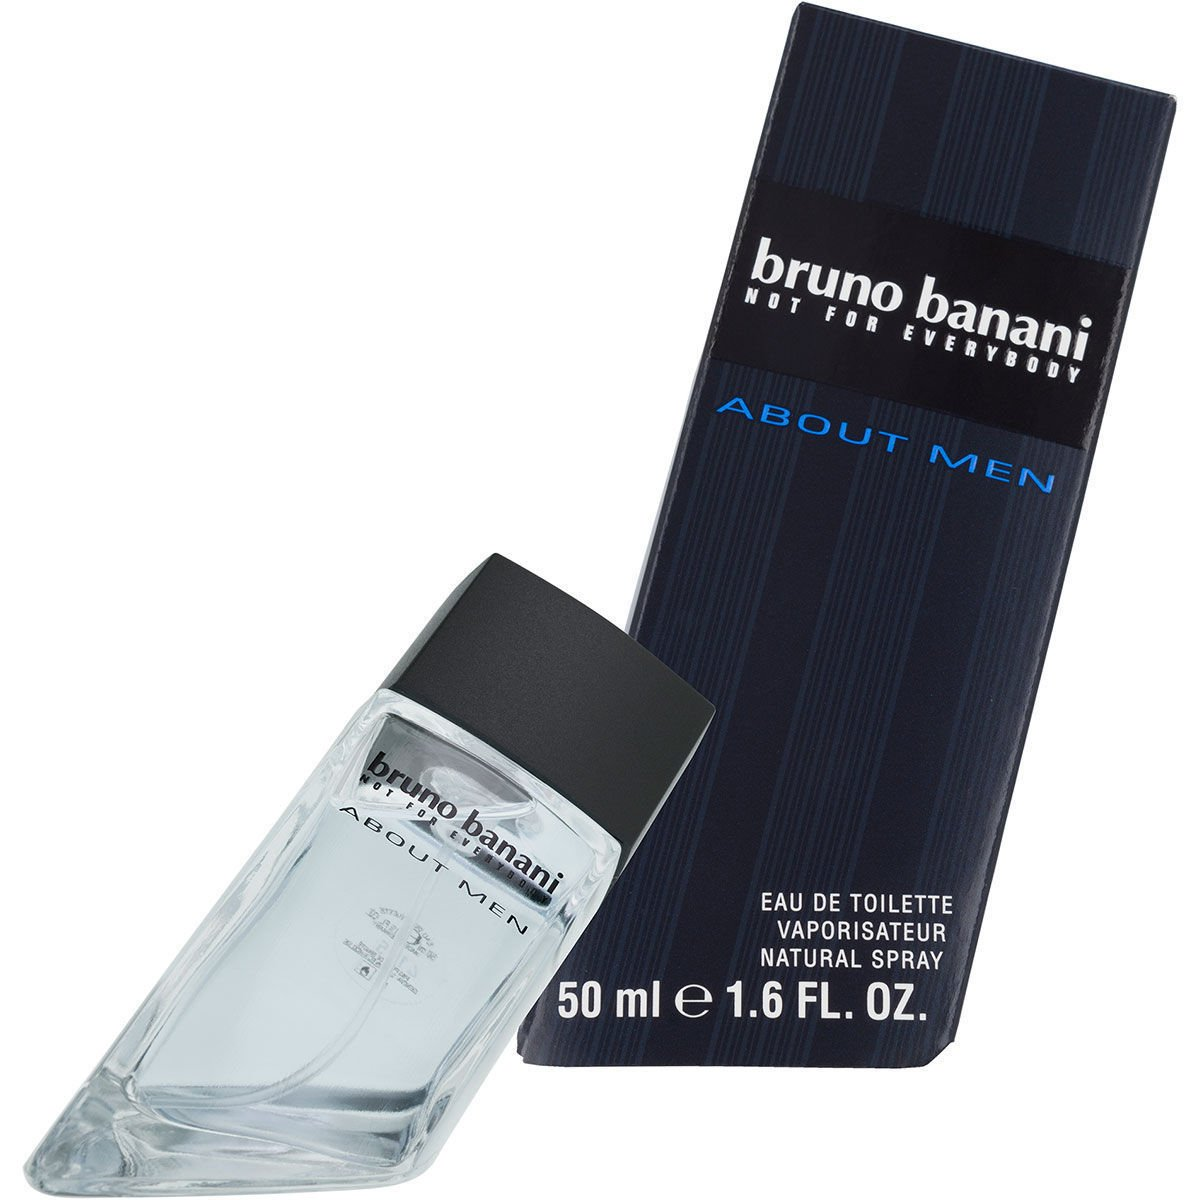 Bild 2 von Bruno Banani About Men, Eau de Toilette